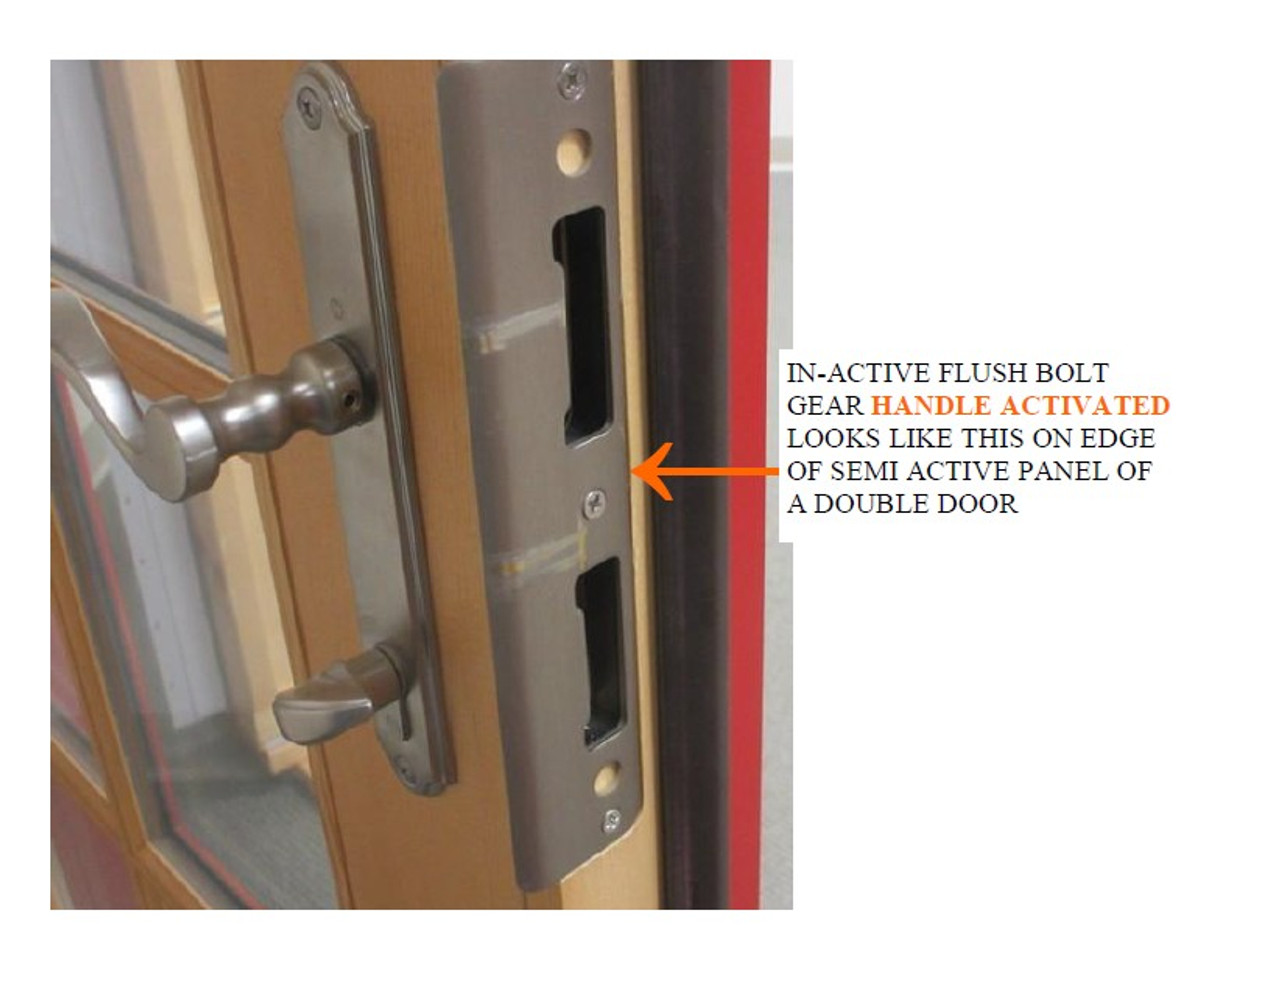 Gear In Active Flushbolt 199768 Handle Activated For A Lincoln Double Swing Door 2002 To Present